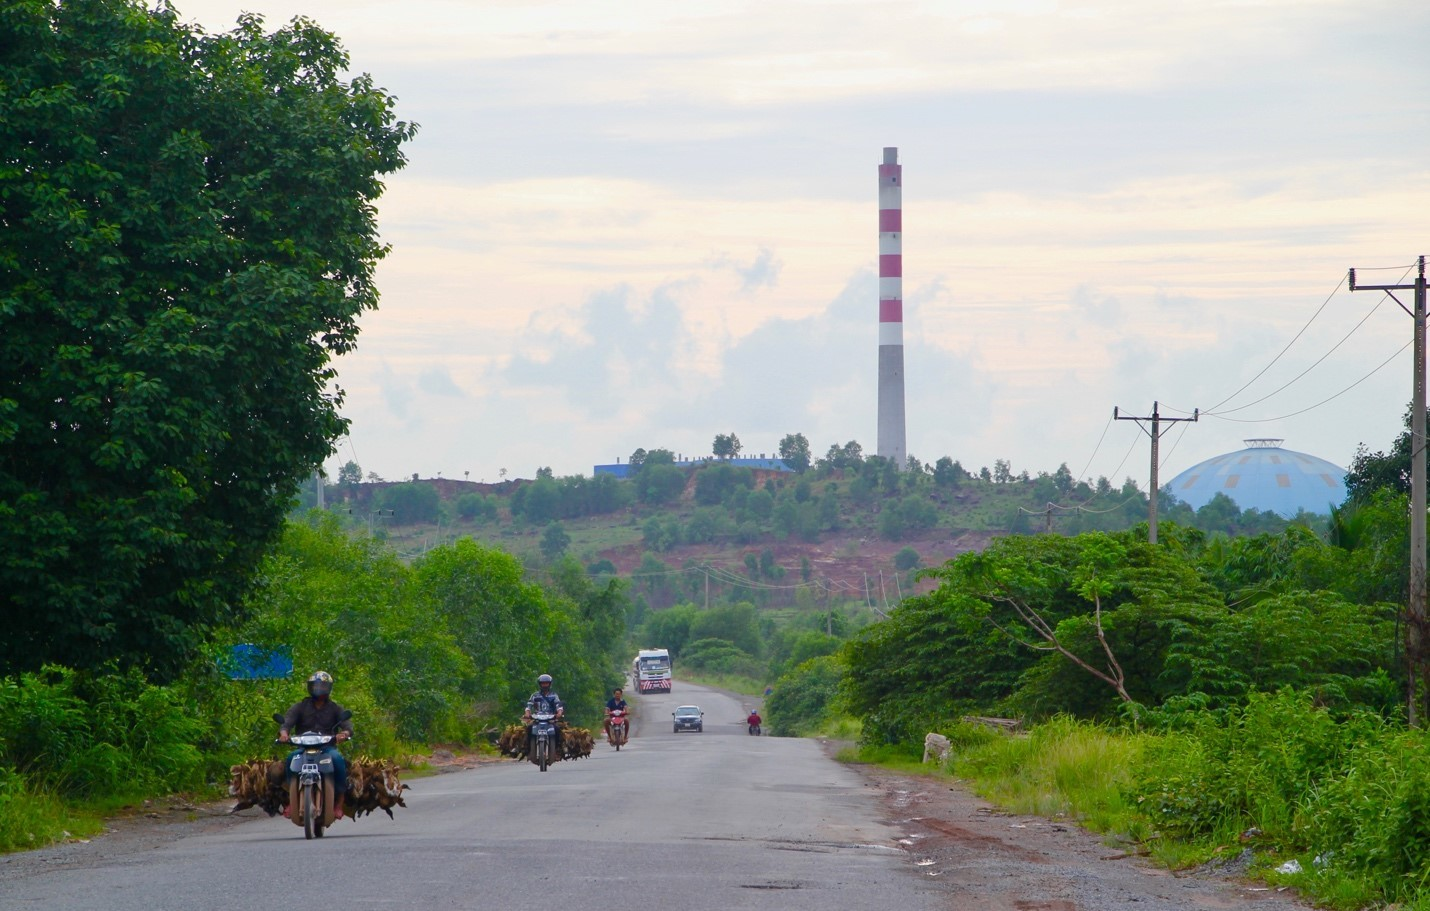 A smokestack rises over the hills of Sihanoukville, Cambodia (Image: Lili Pike)